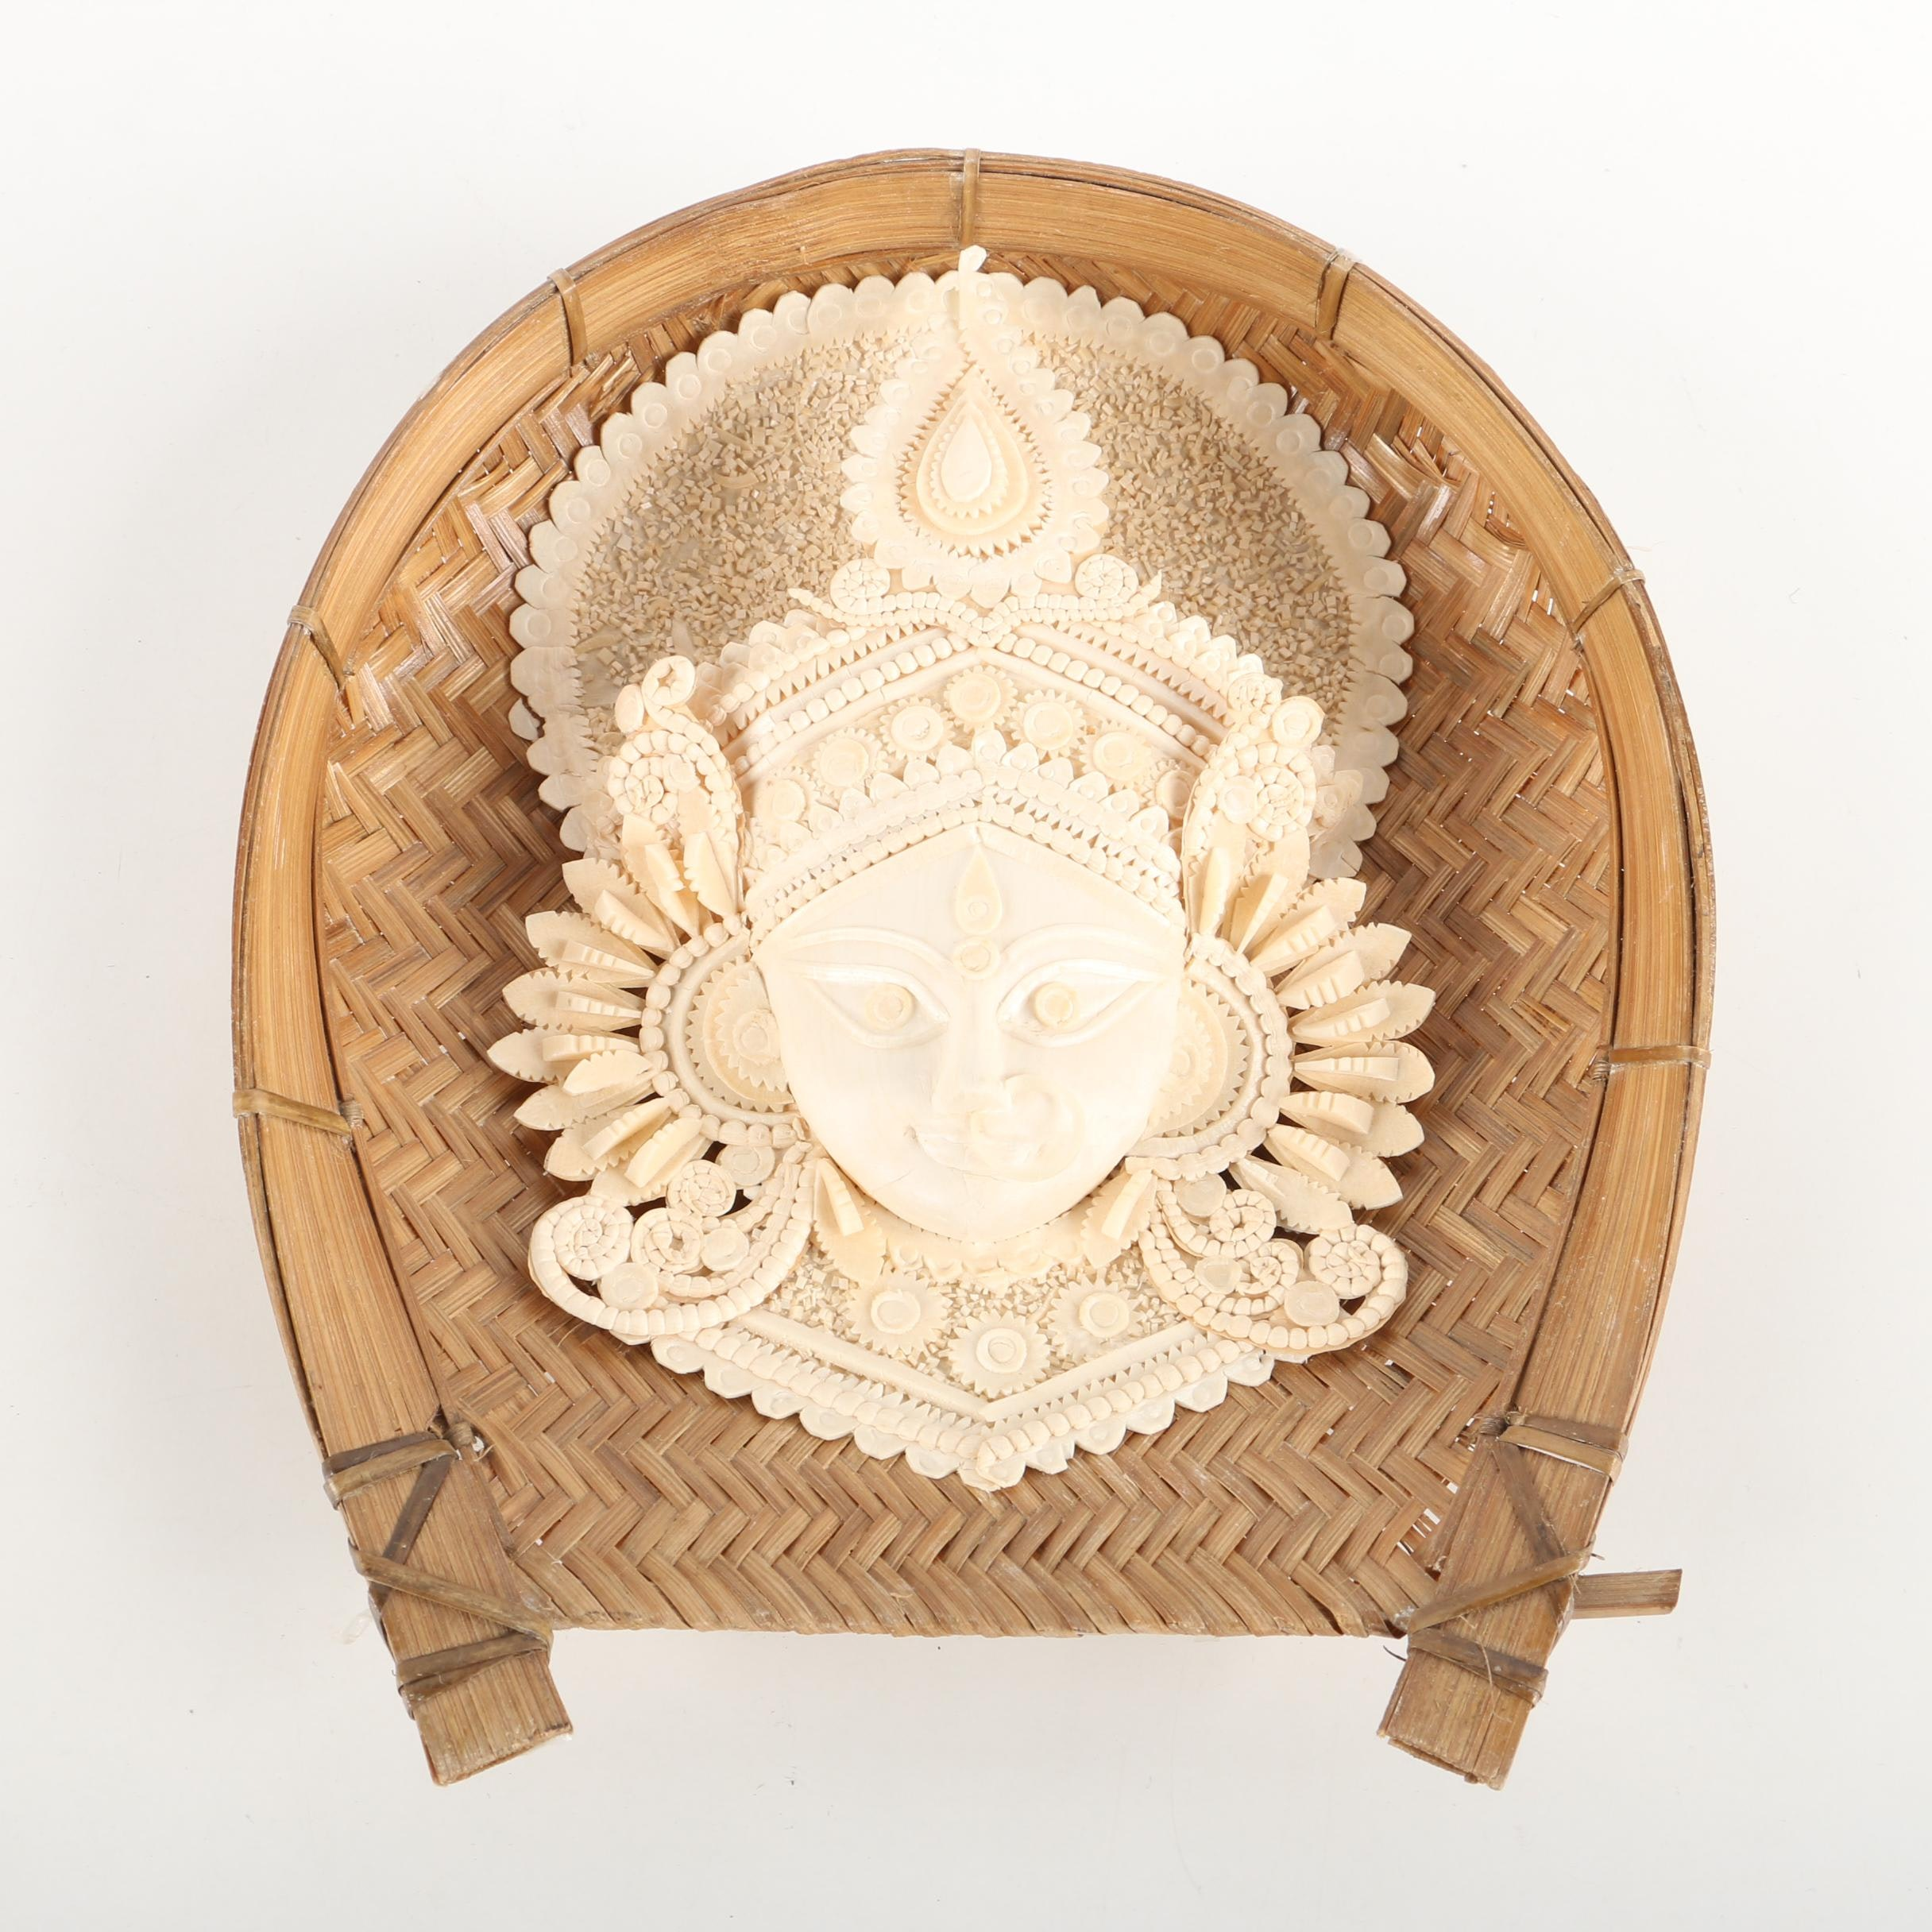 Southeast Asian Style Pressed Paper and Wood Sculpture